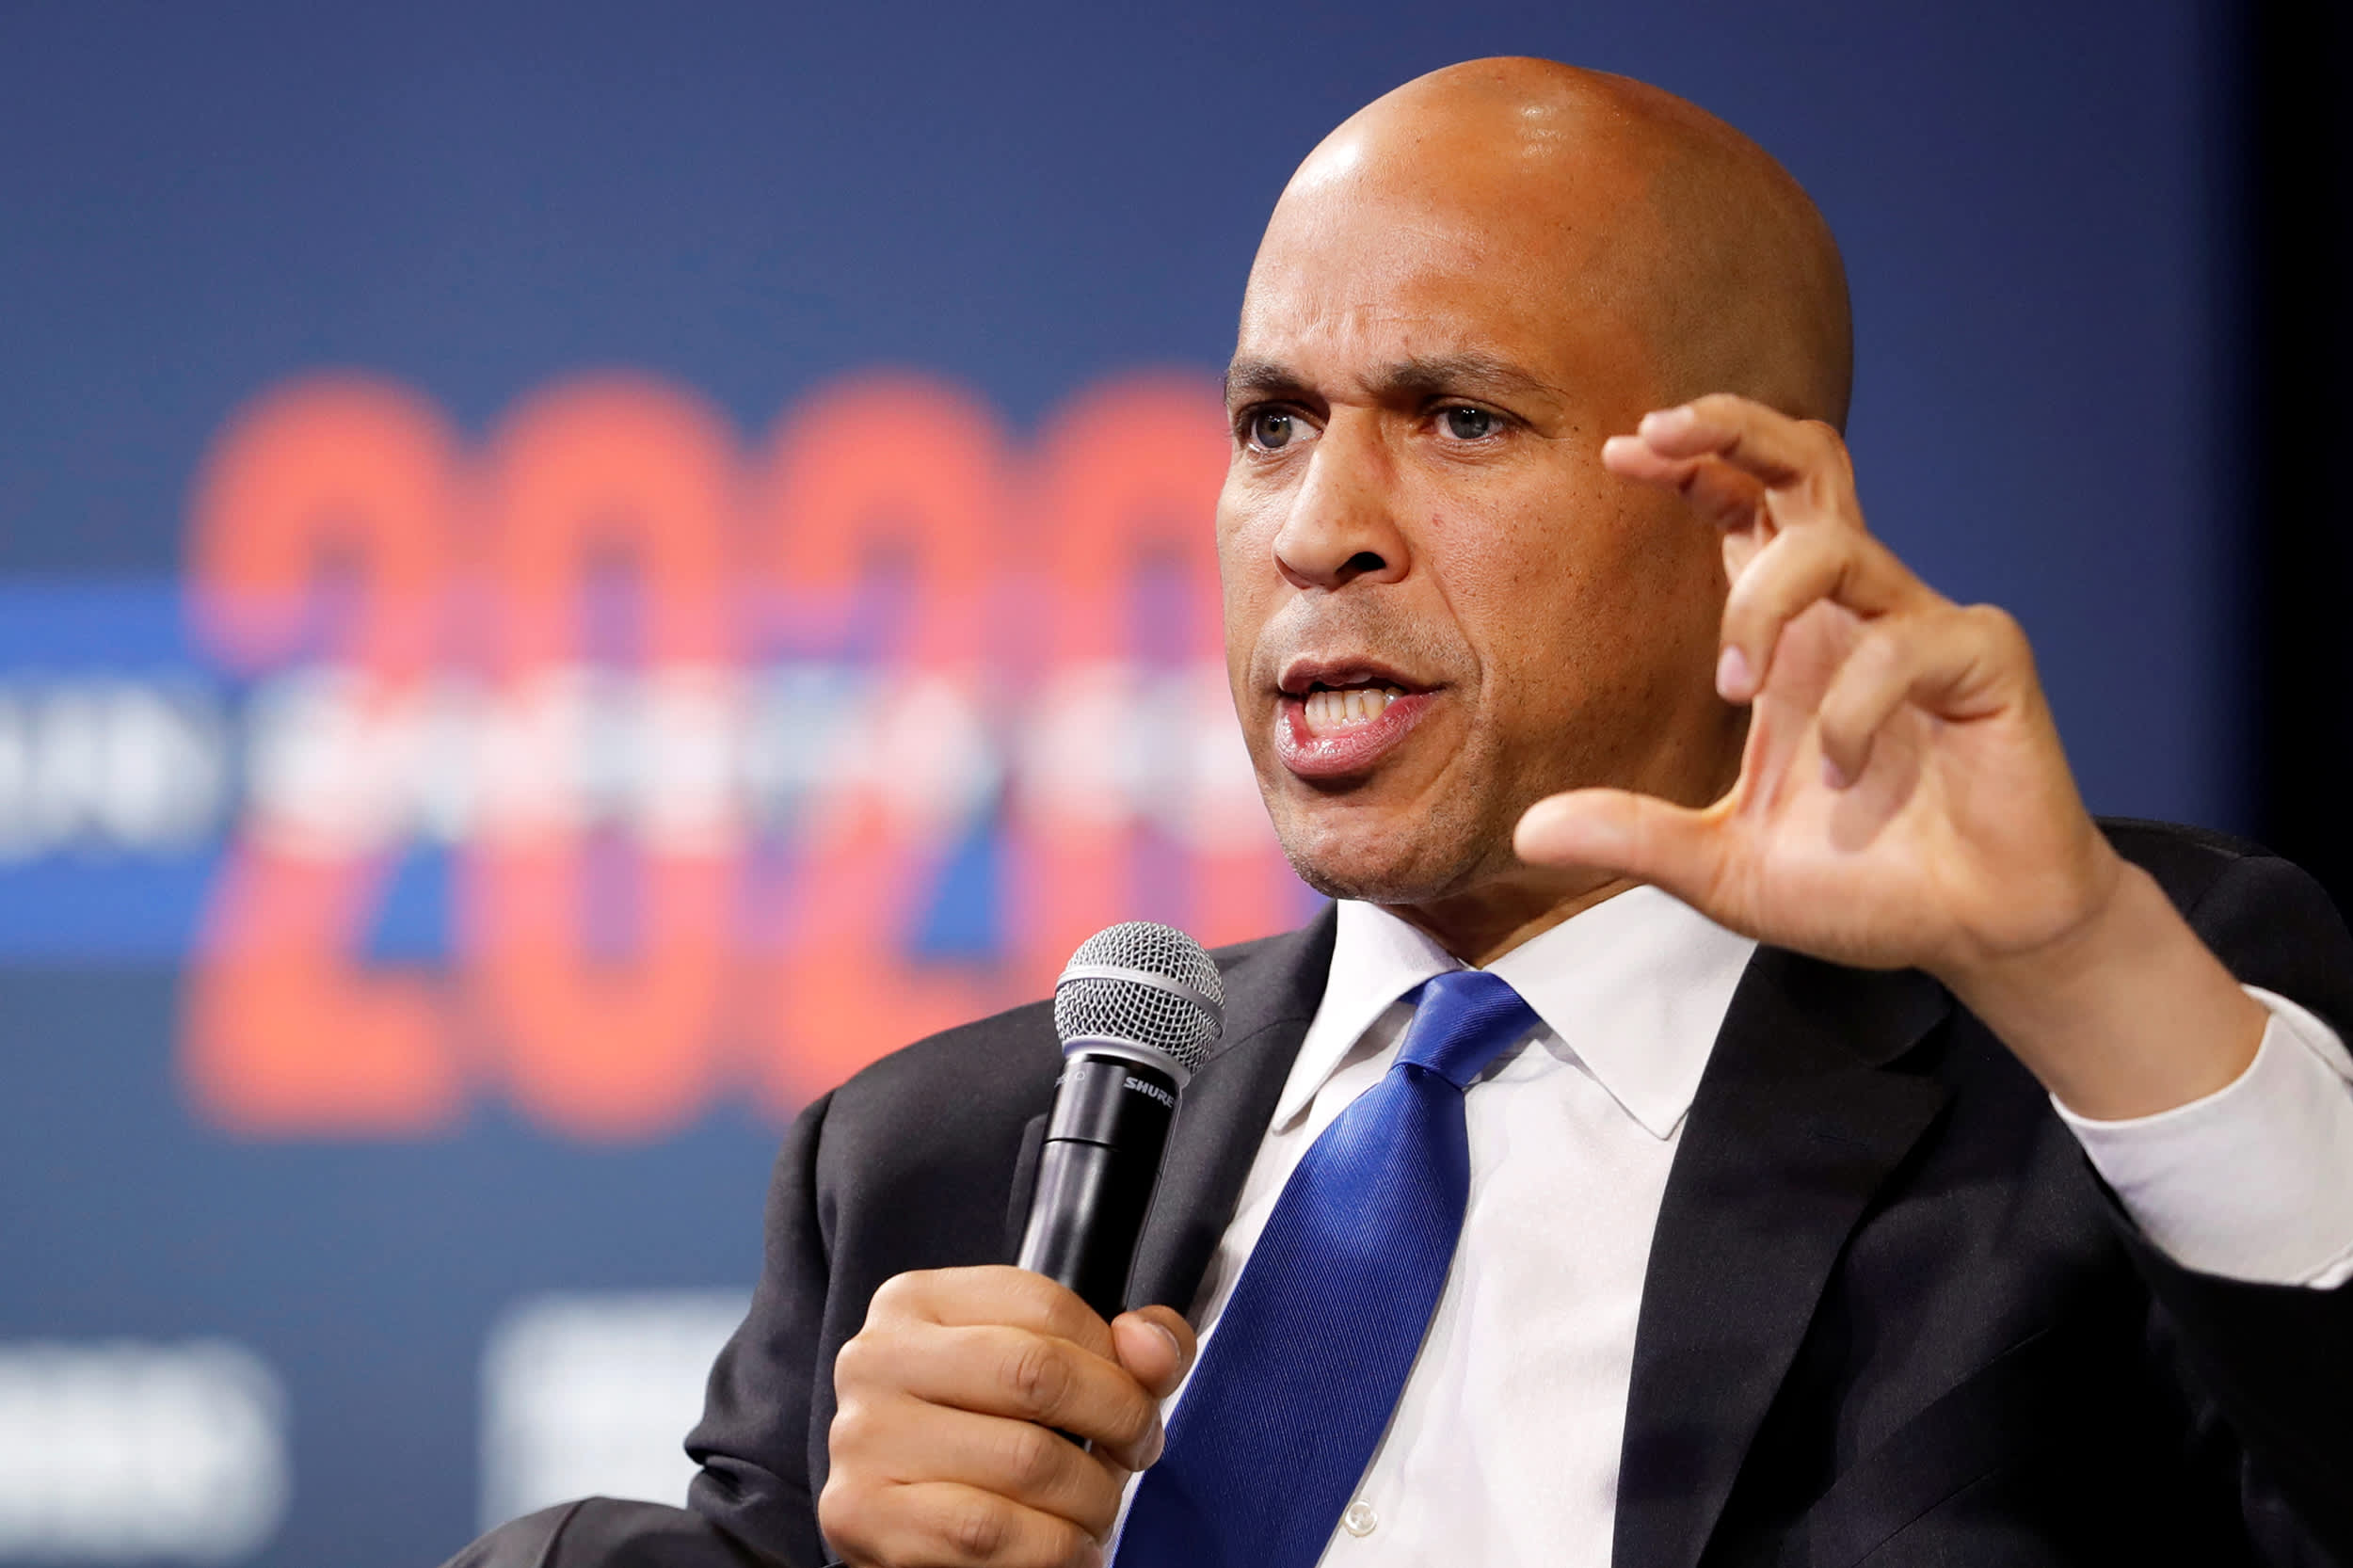 Impeachment trial could be 'big blow' to my campaign, Cory Booker says